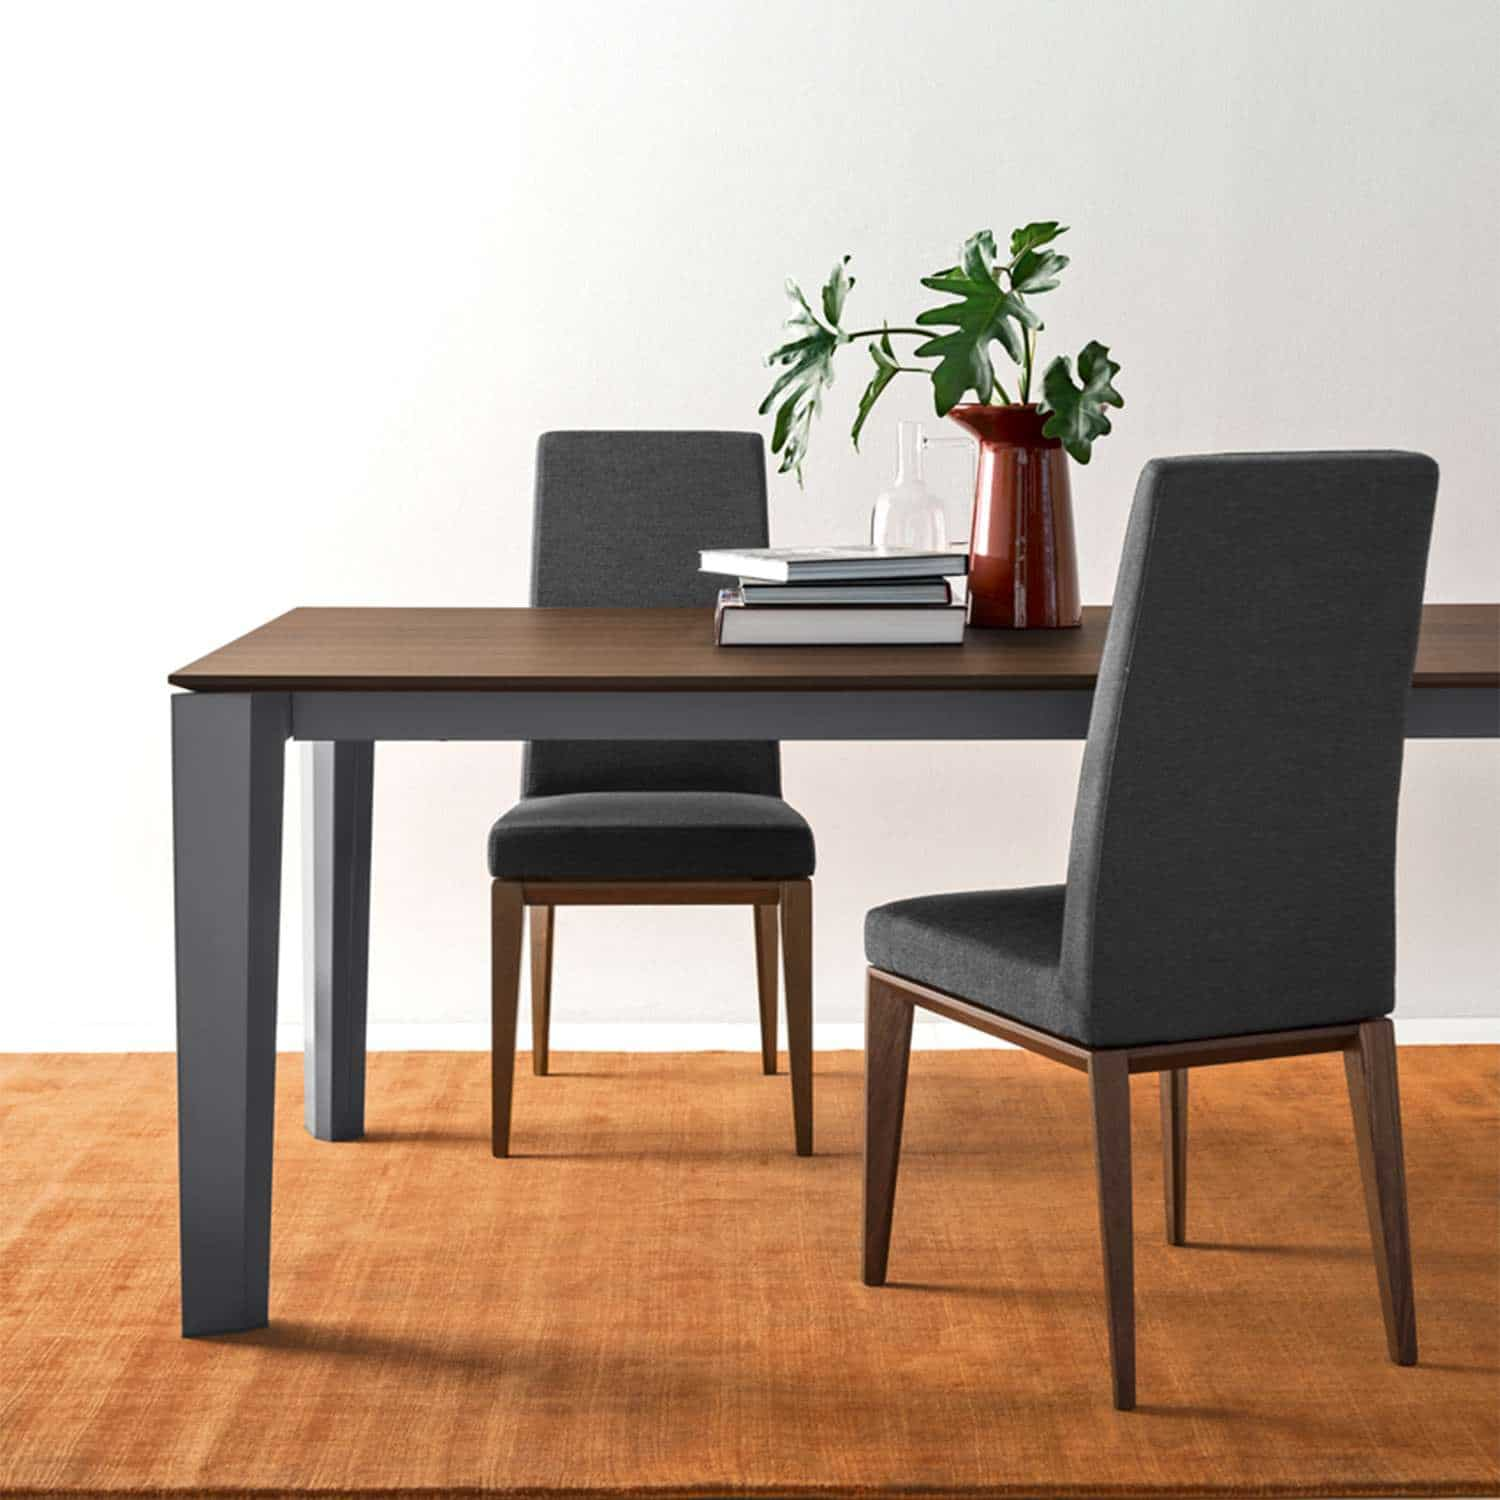 Calligaris is a renown contemporary global brand of quality modern furniture that is both functional and stylish.